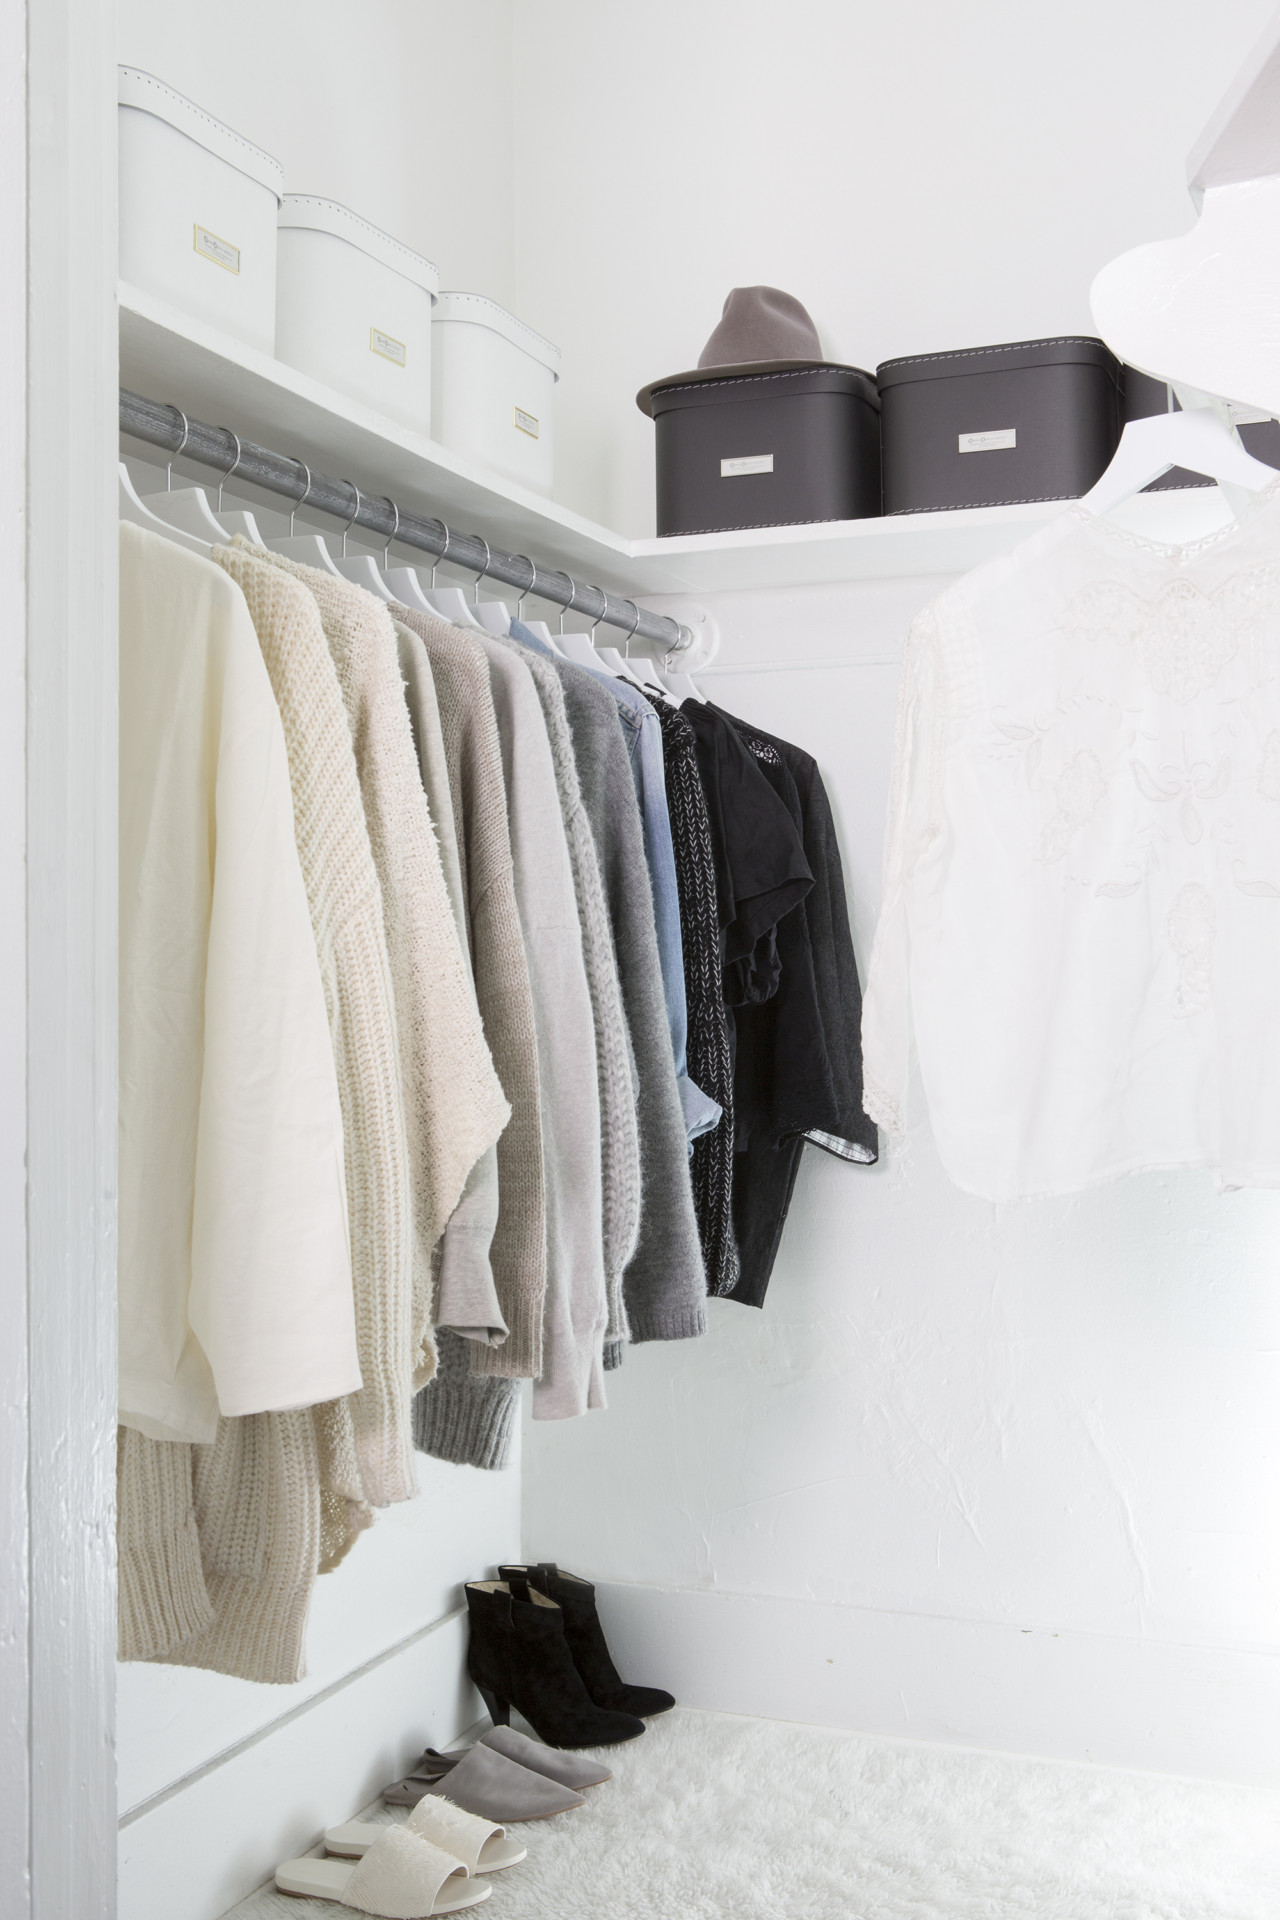 Find out what your closet can look like after a simple makeover.